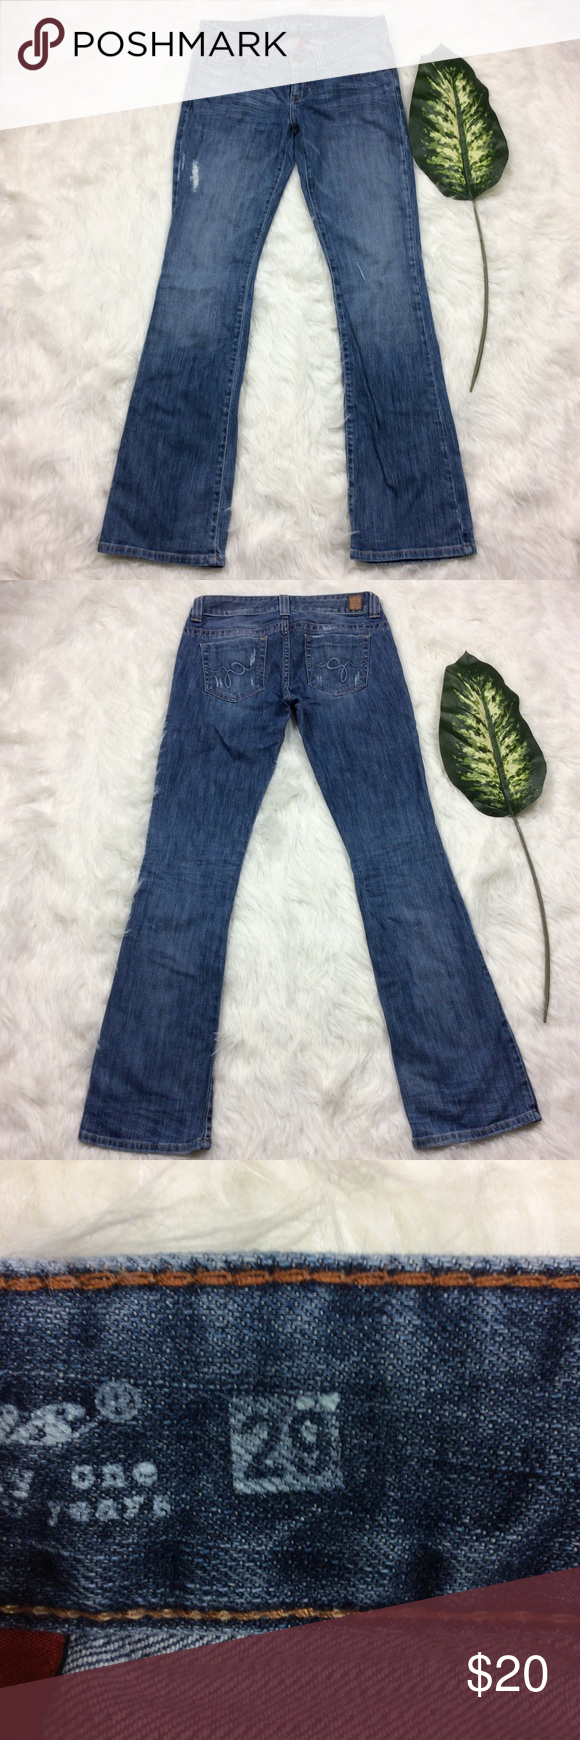 Guess Distressed Daredevil Bootcut Jeans size 29 Guess